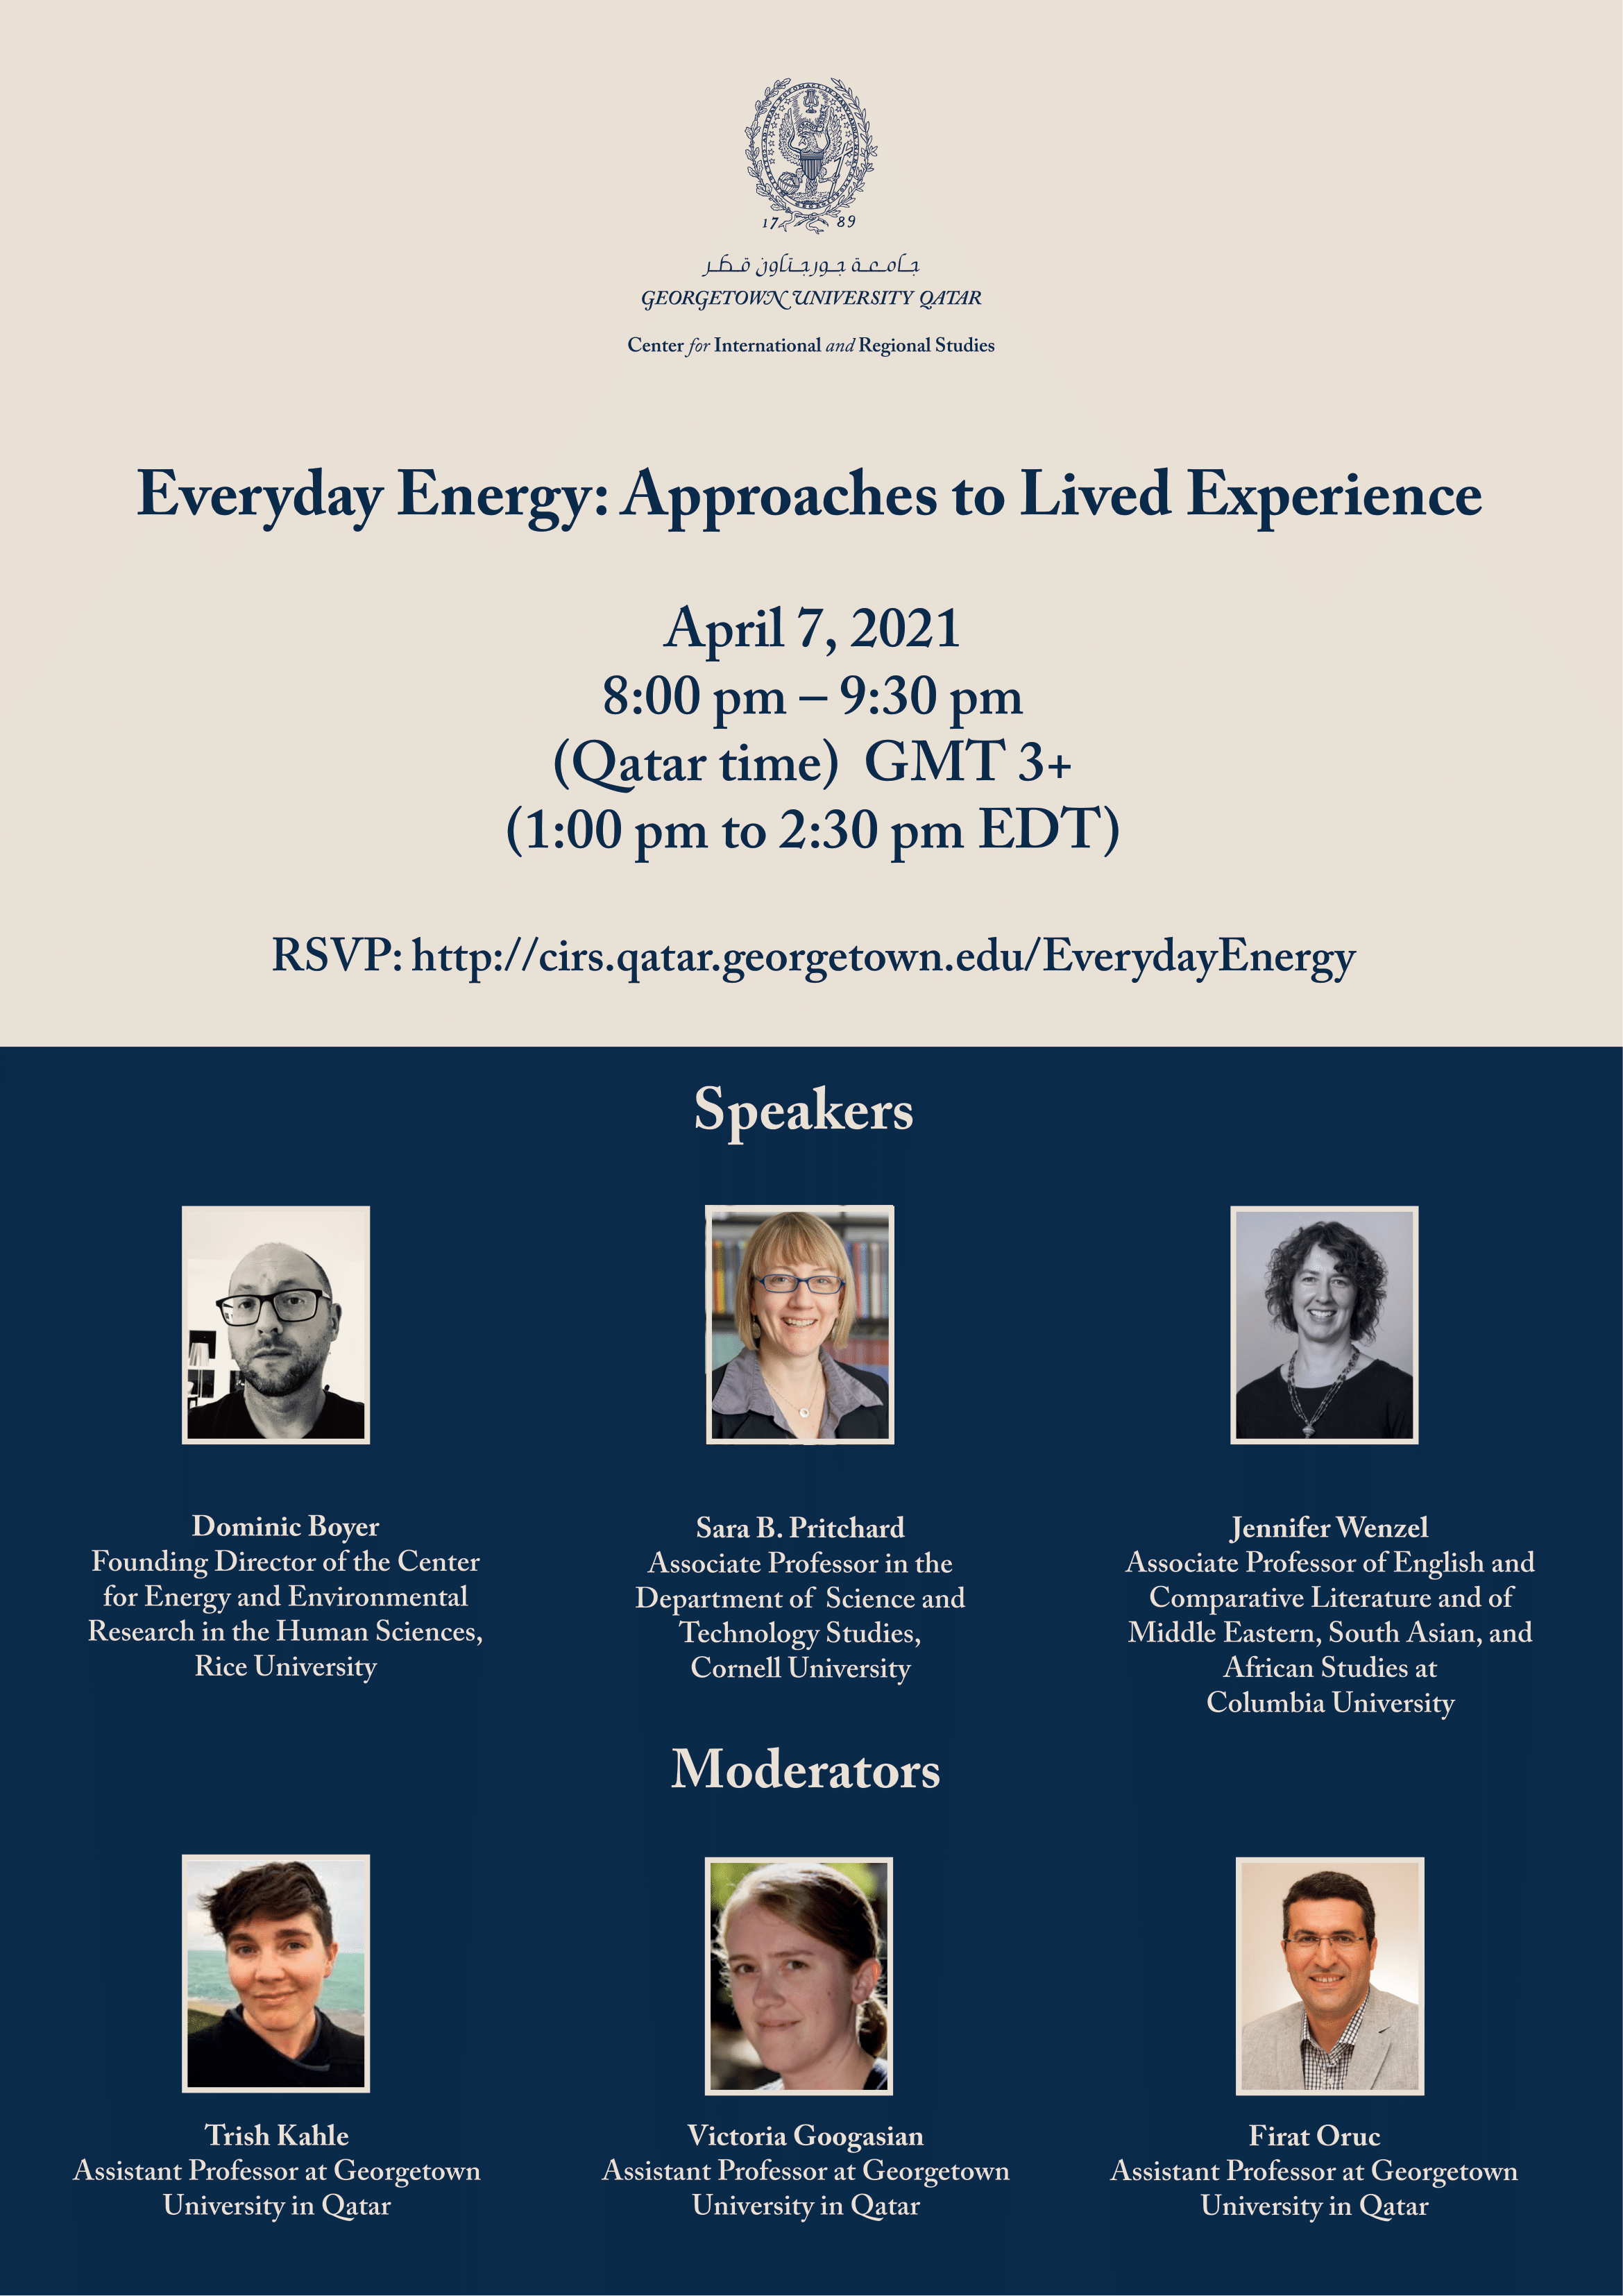 Image contains the CIRS logo, followed by text: Everyday Energy: Approaches to Lived Experience | April 7 | 8 pm to 9:30 pm | RSVP | Pictures of speakers mentioned in text.